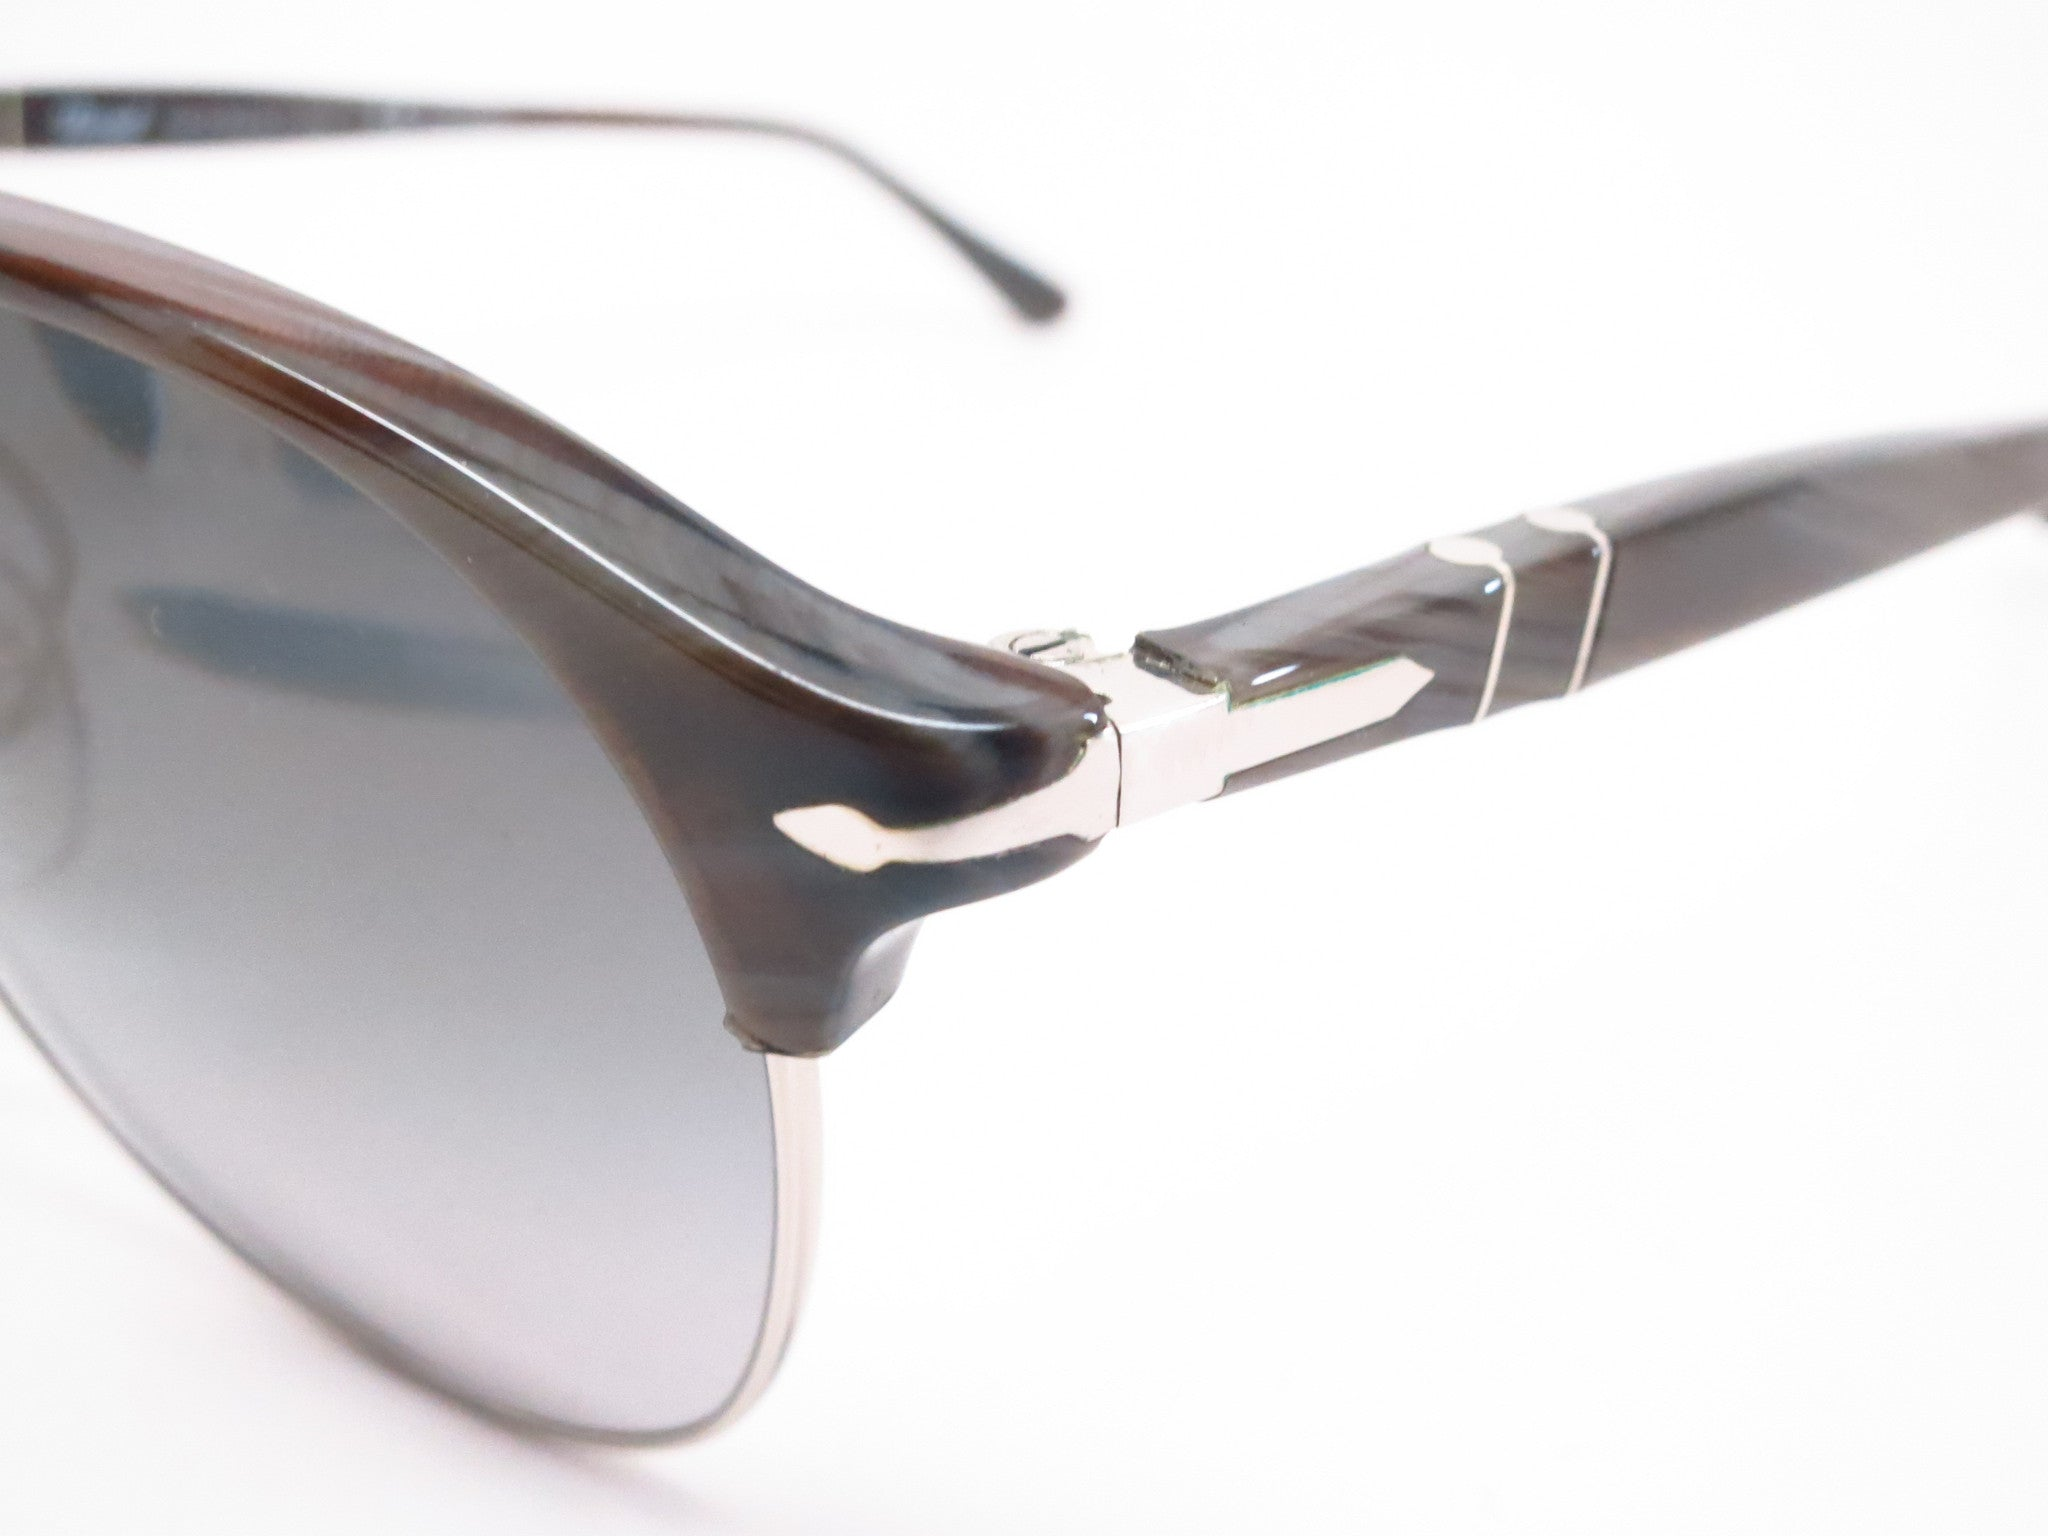 b7d25d9f97 ... Persol PO 8649S 1045 M3 Dark Horn Polarized Sunglasses - Eye Heart  Shades - Persol ...